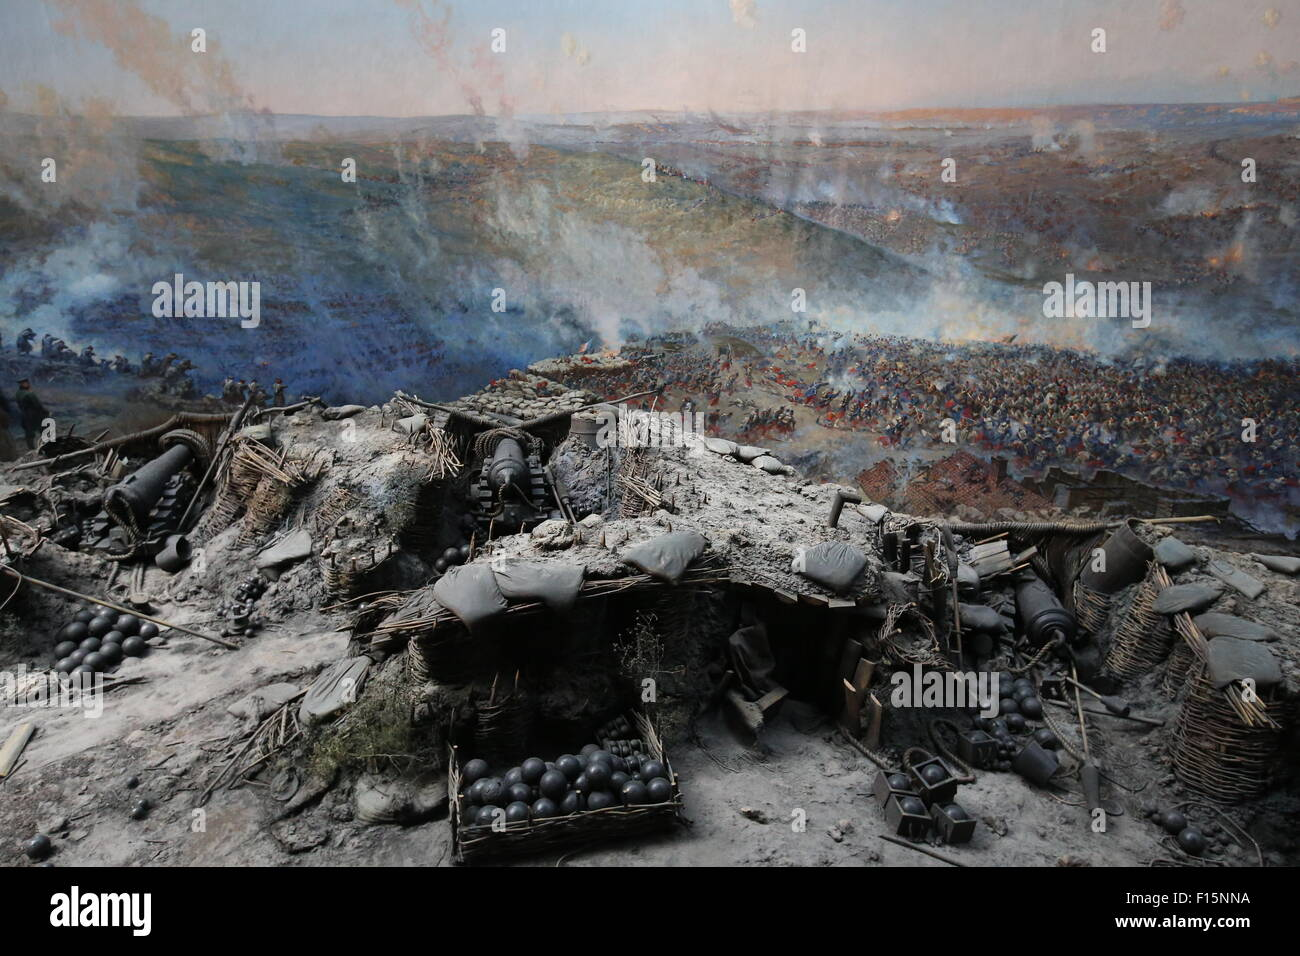 Sevastopol, Russia. 27th Aug, 2015. An image of a battle in the Siege of Sevastopol Panorama Museum, Crimea. © - Stock Image